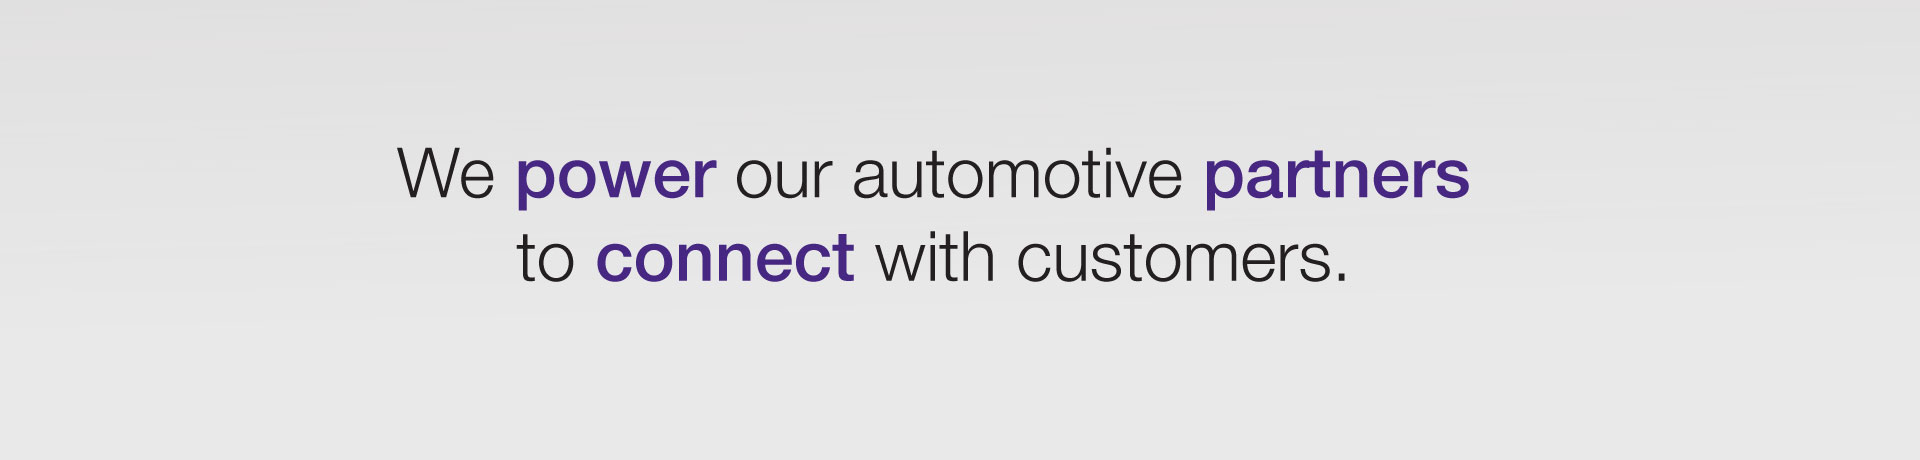 We Power Our Automotive Partners To Connect With Customers.